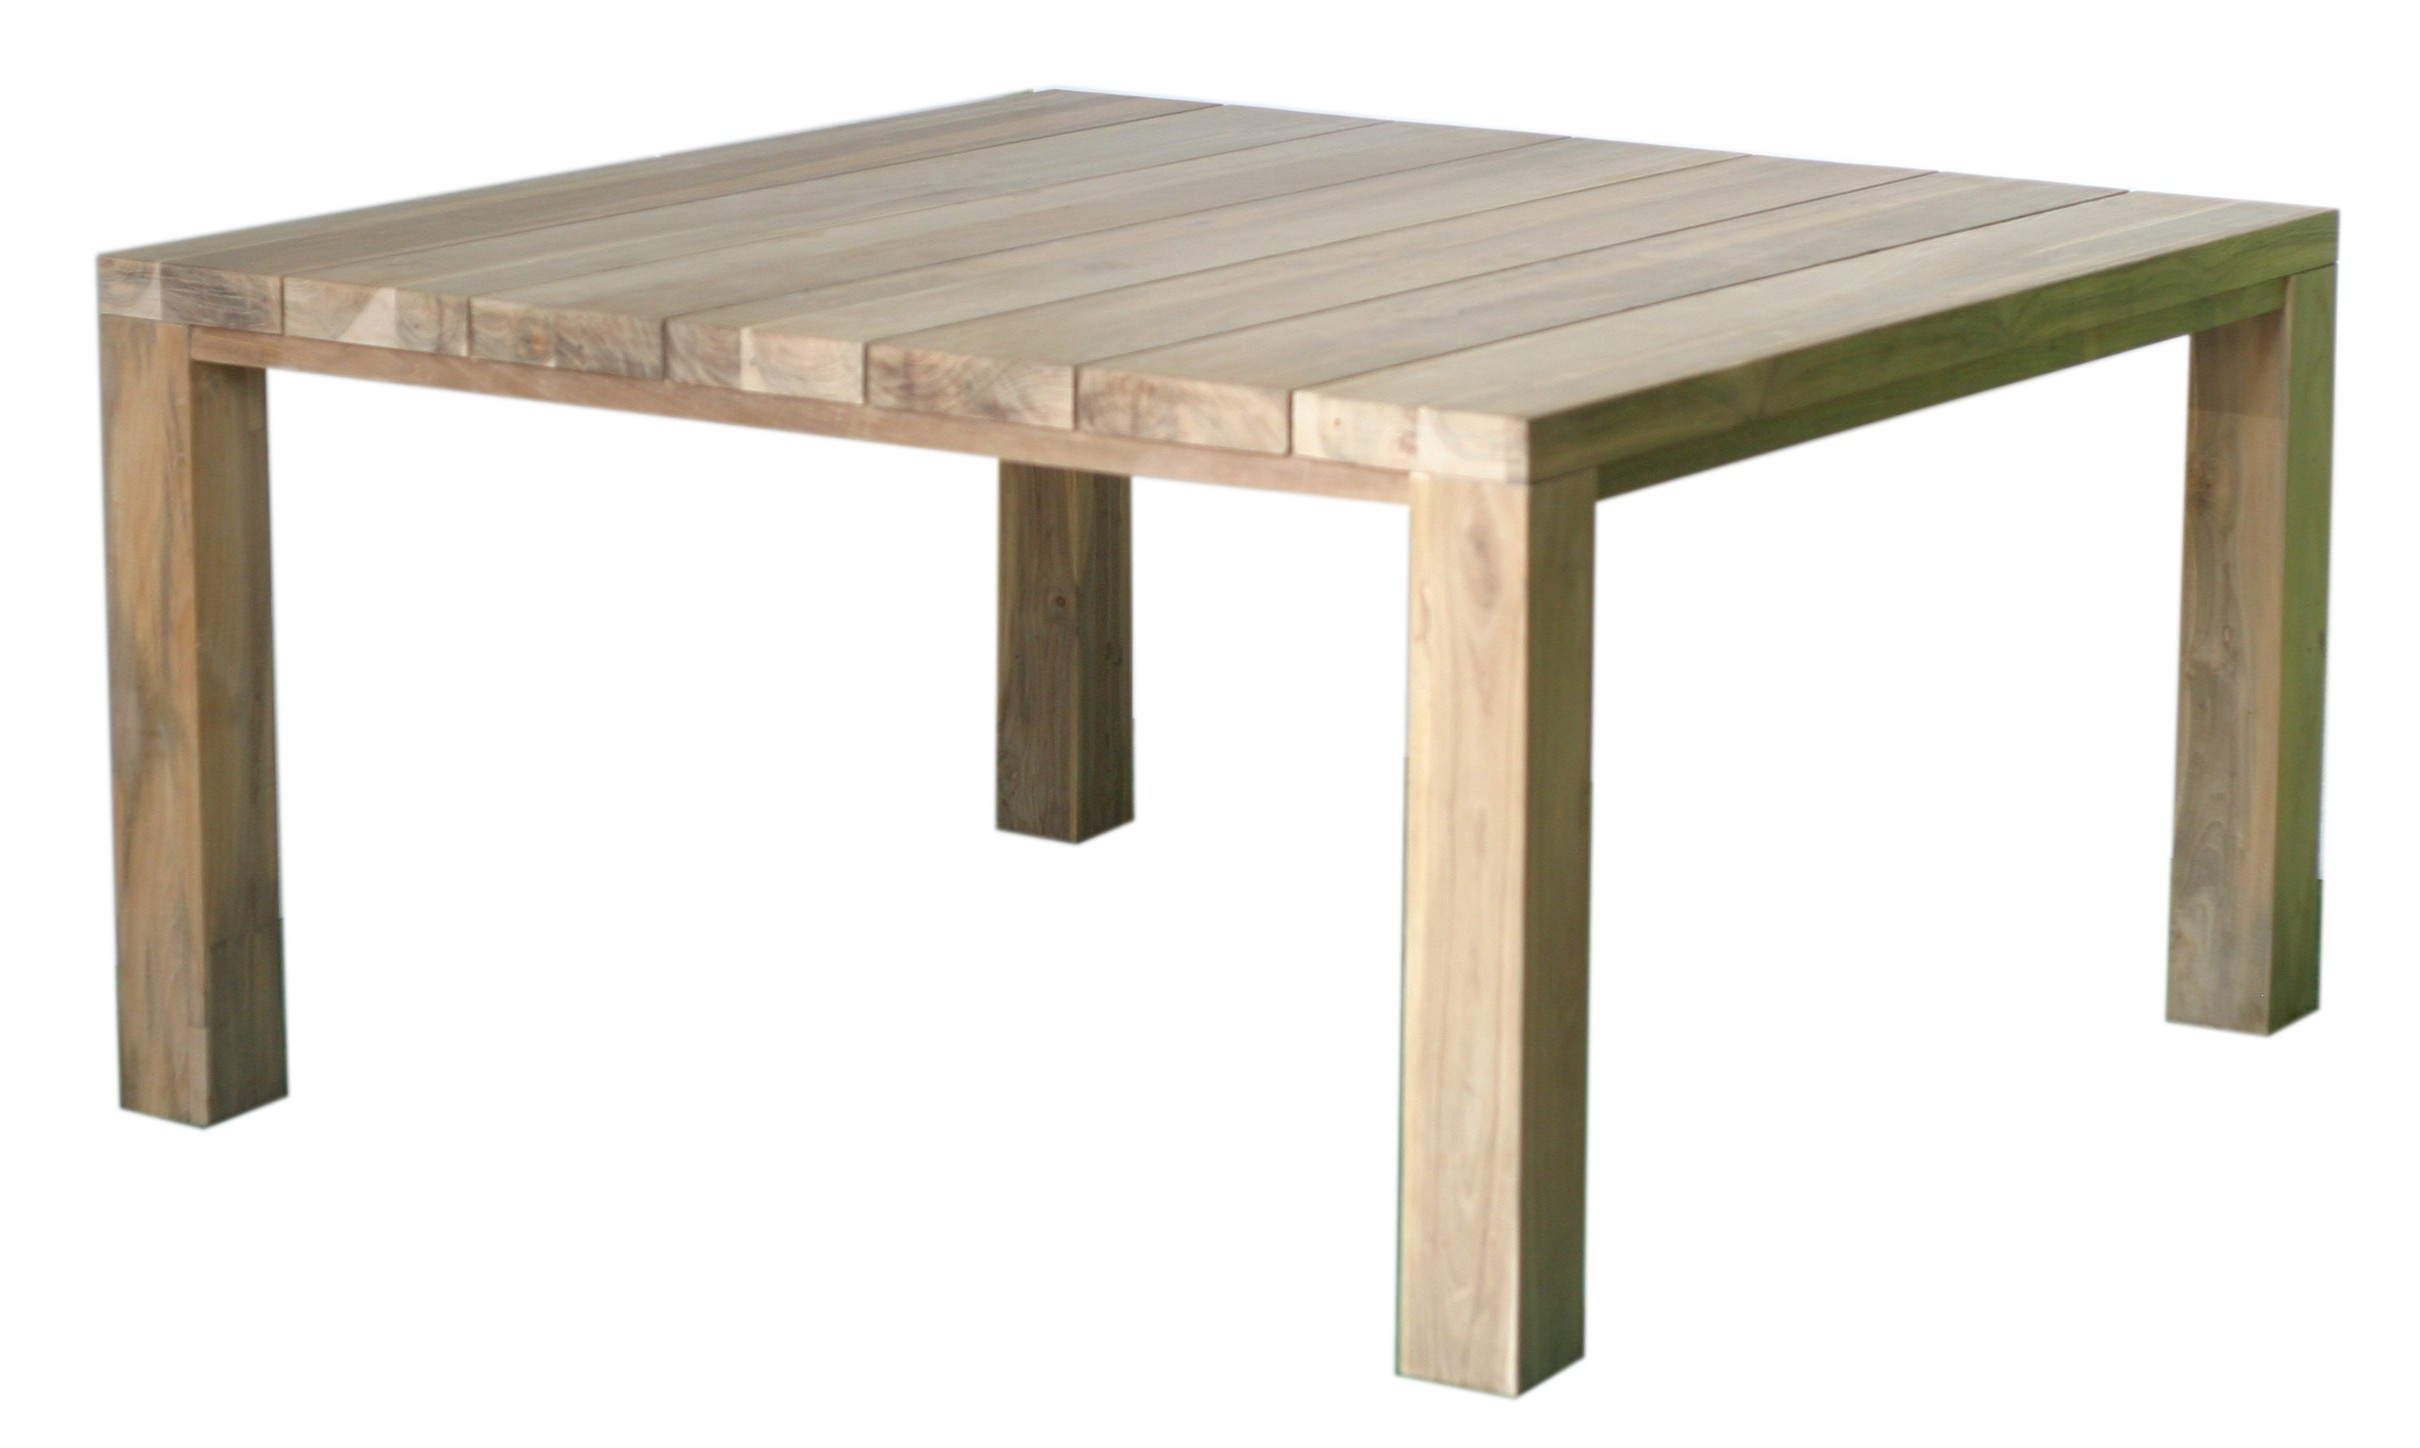 Frais table manger carr e id es de conception de rideaux for Grande table a manger carree